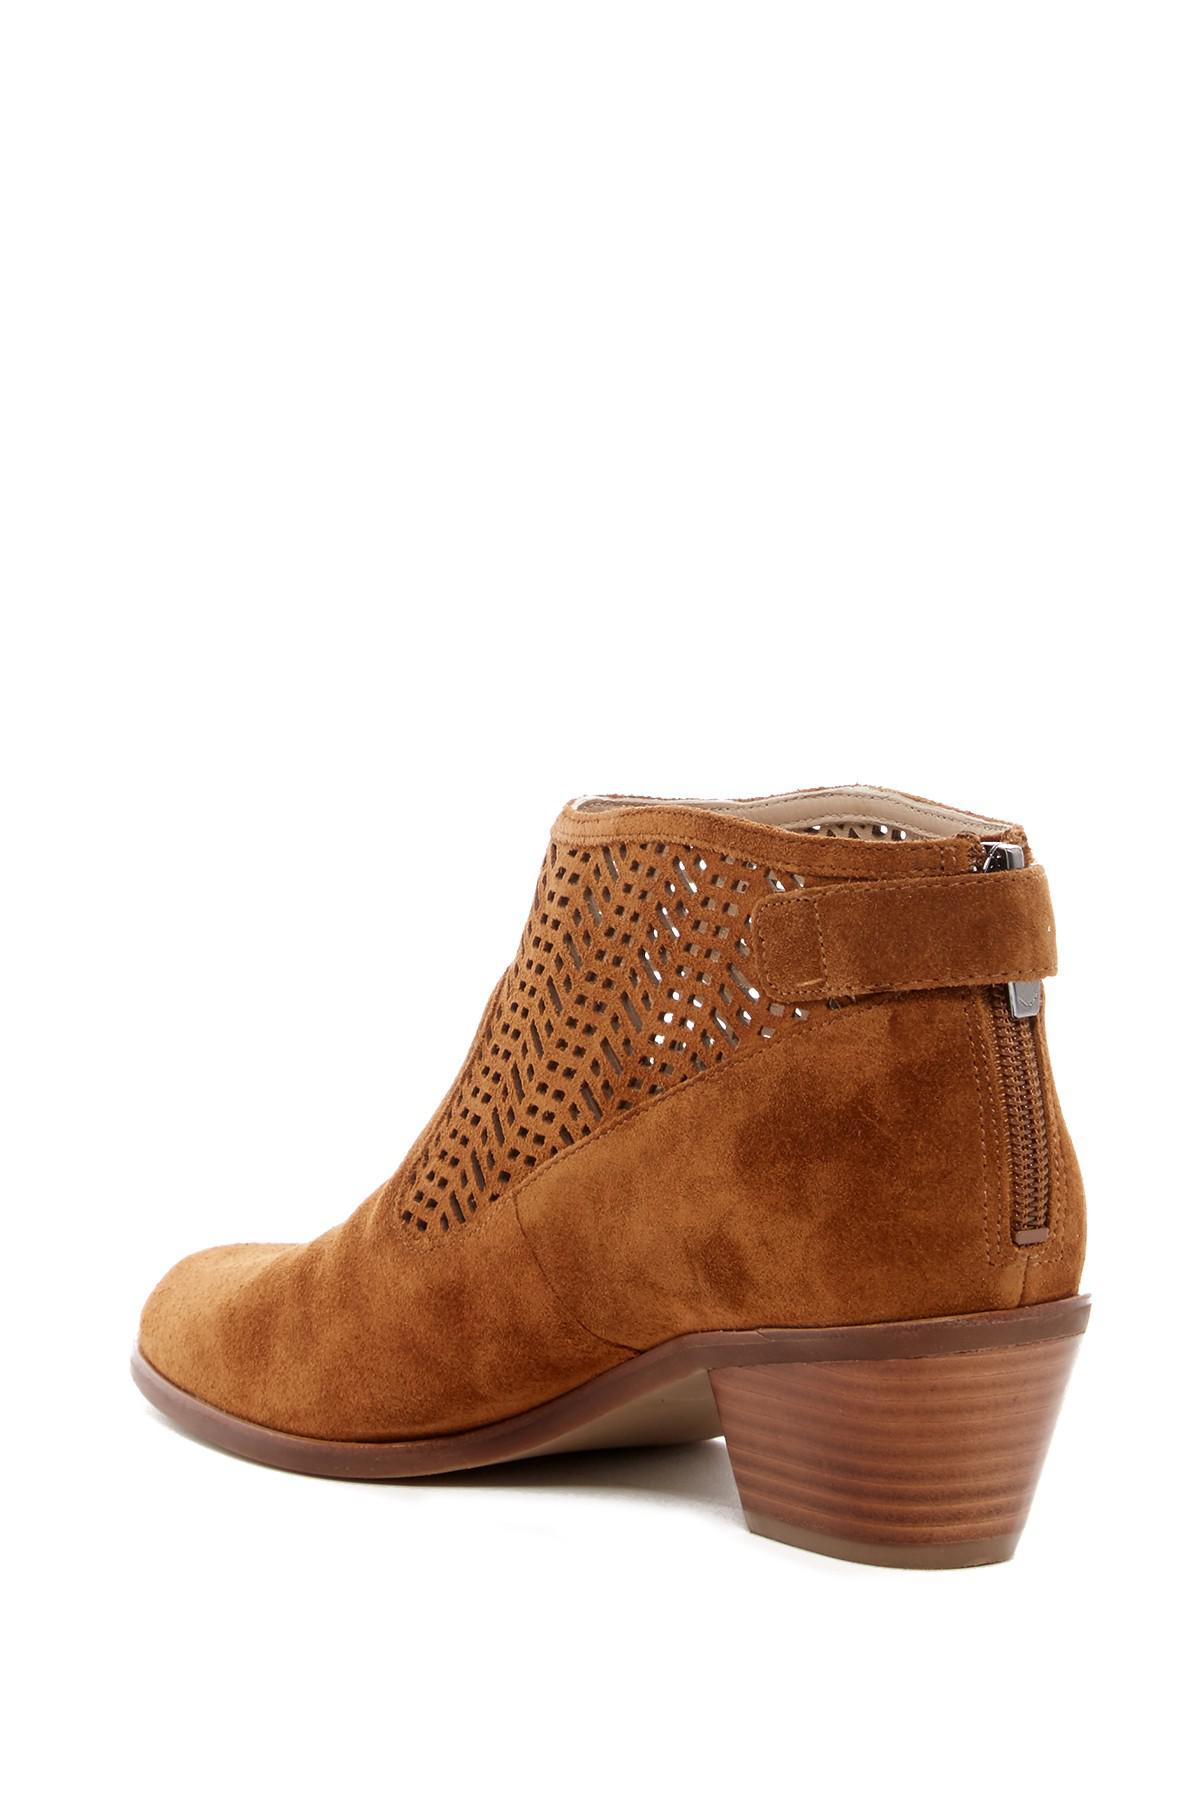 d496be5afab Gallery. Previously sold at  Nordstrom Rack · Women s Brown Boots ...